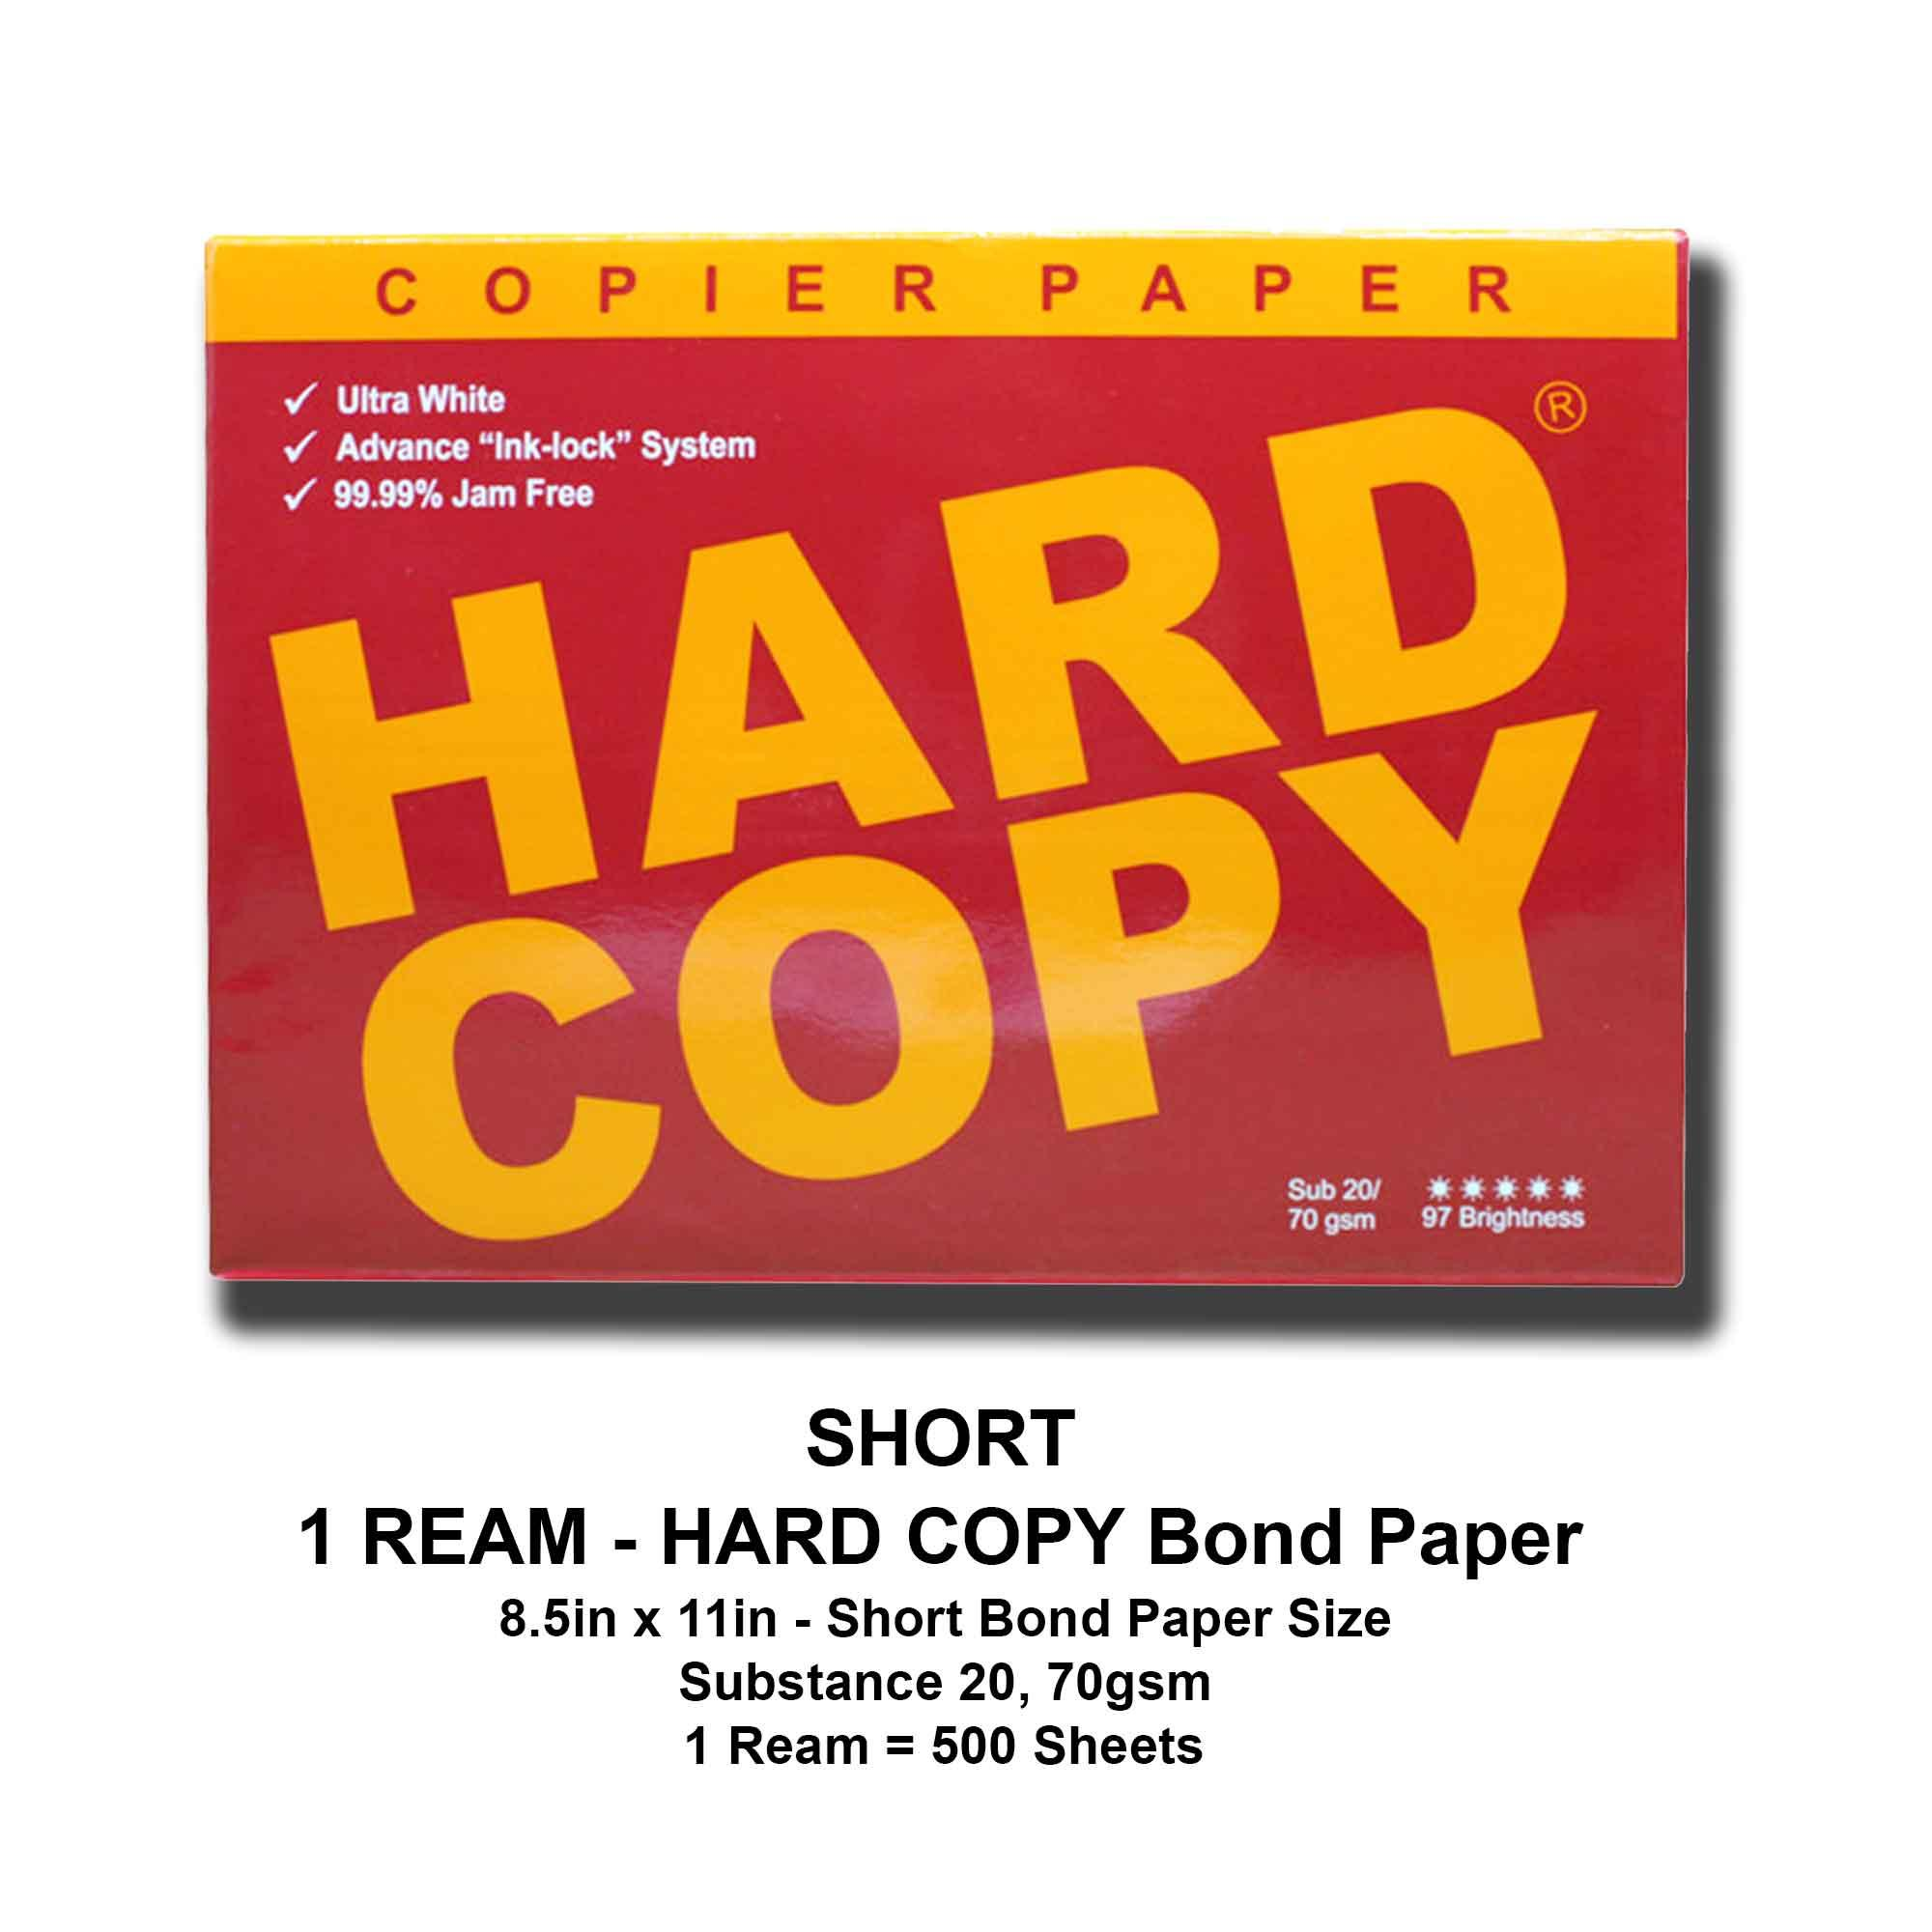 Paper products for sale paper items prices brands review in hard copy bond paper 1 ream short bond paper size 85x11 inches malvernweather Images